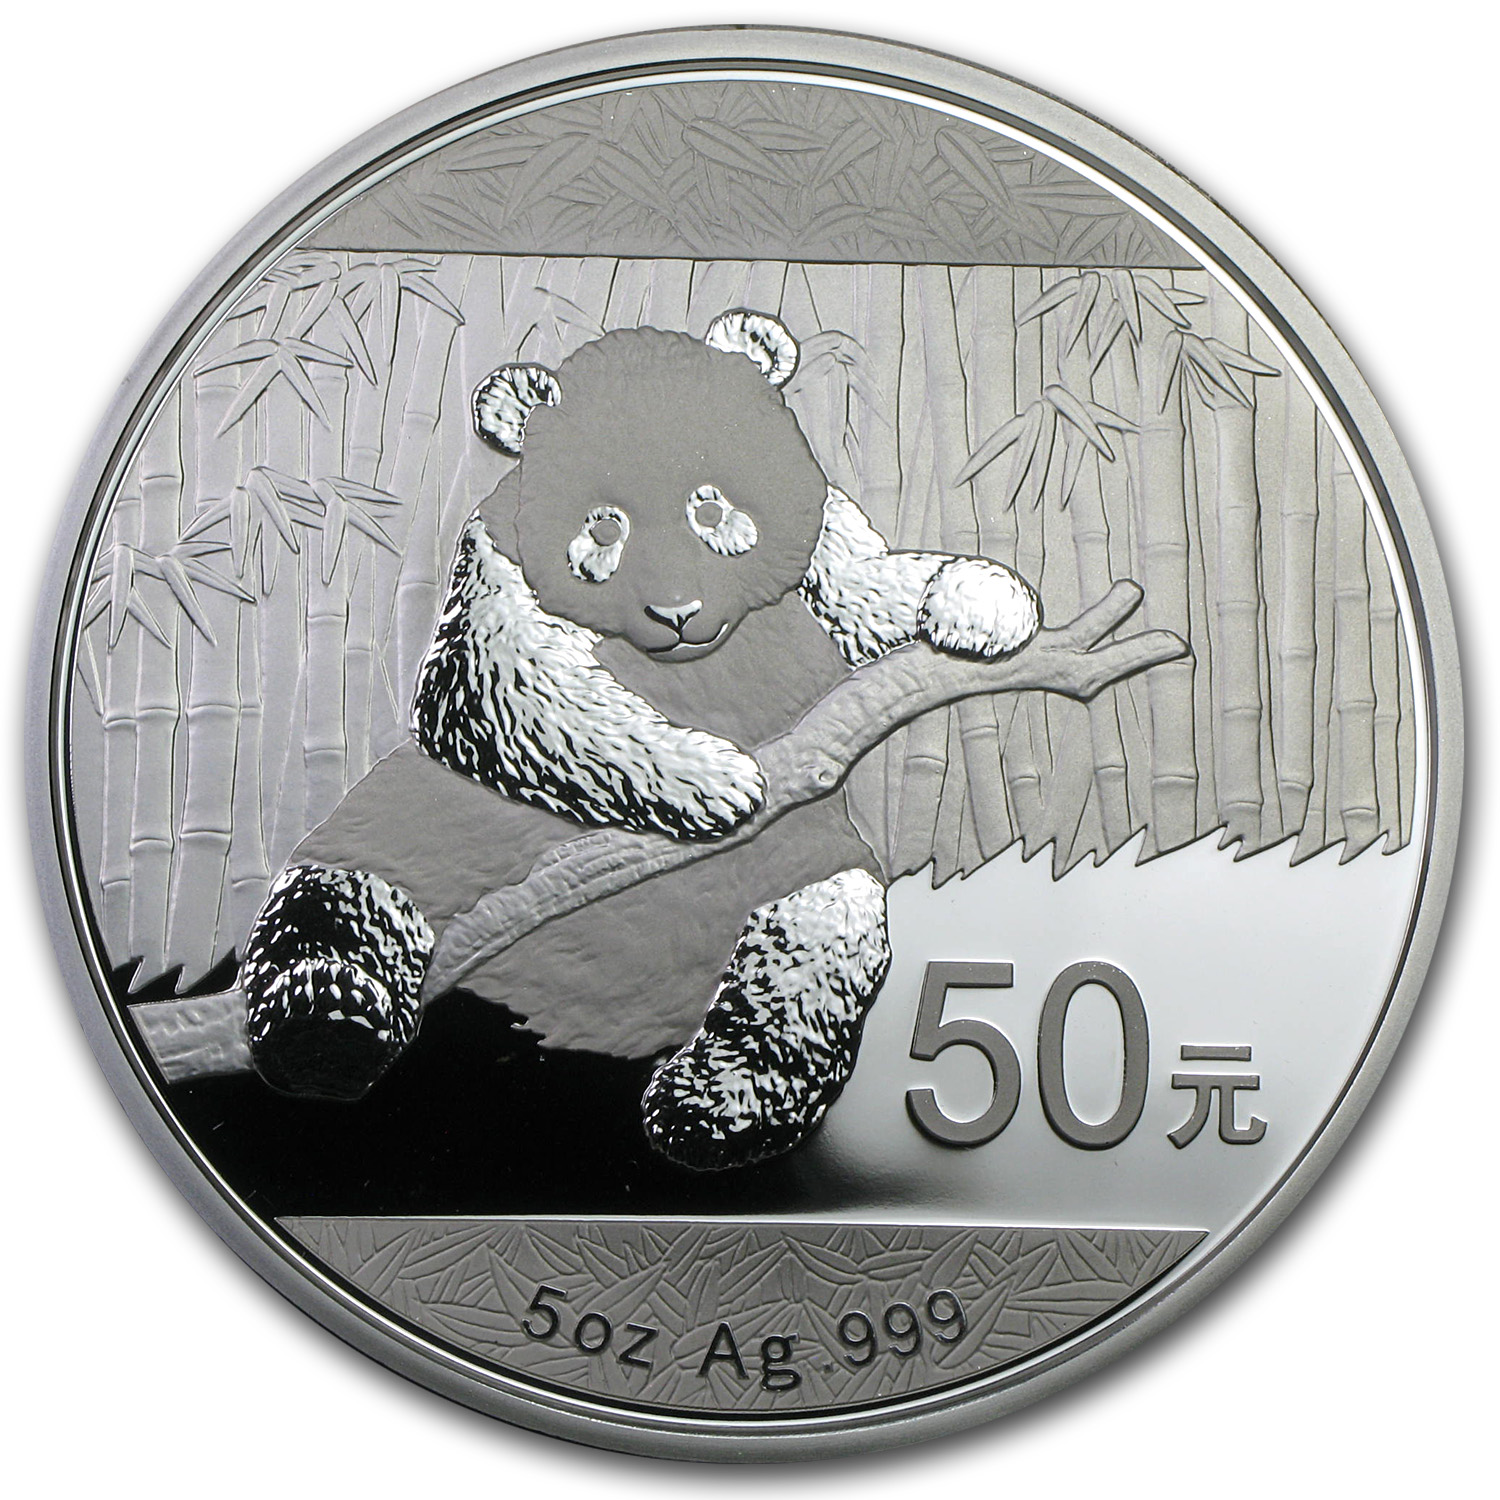 2014 5 oz Proof Silver Panda (w/Box & CoA)